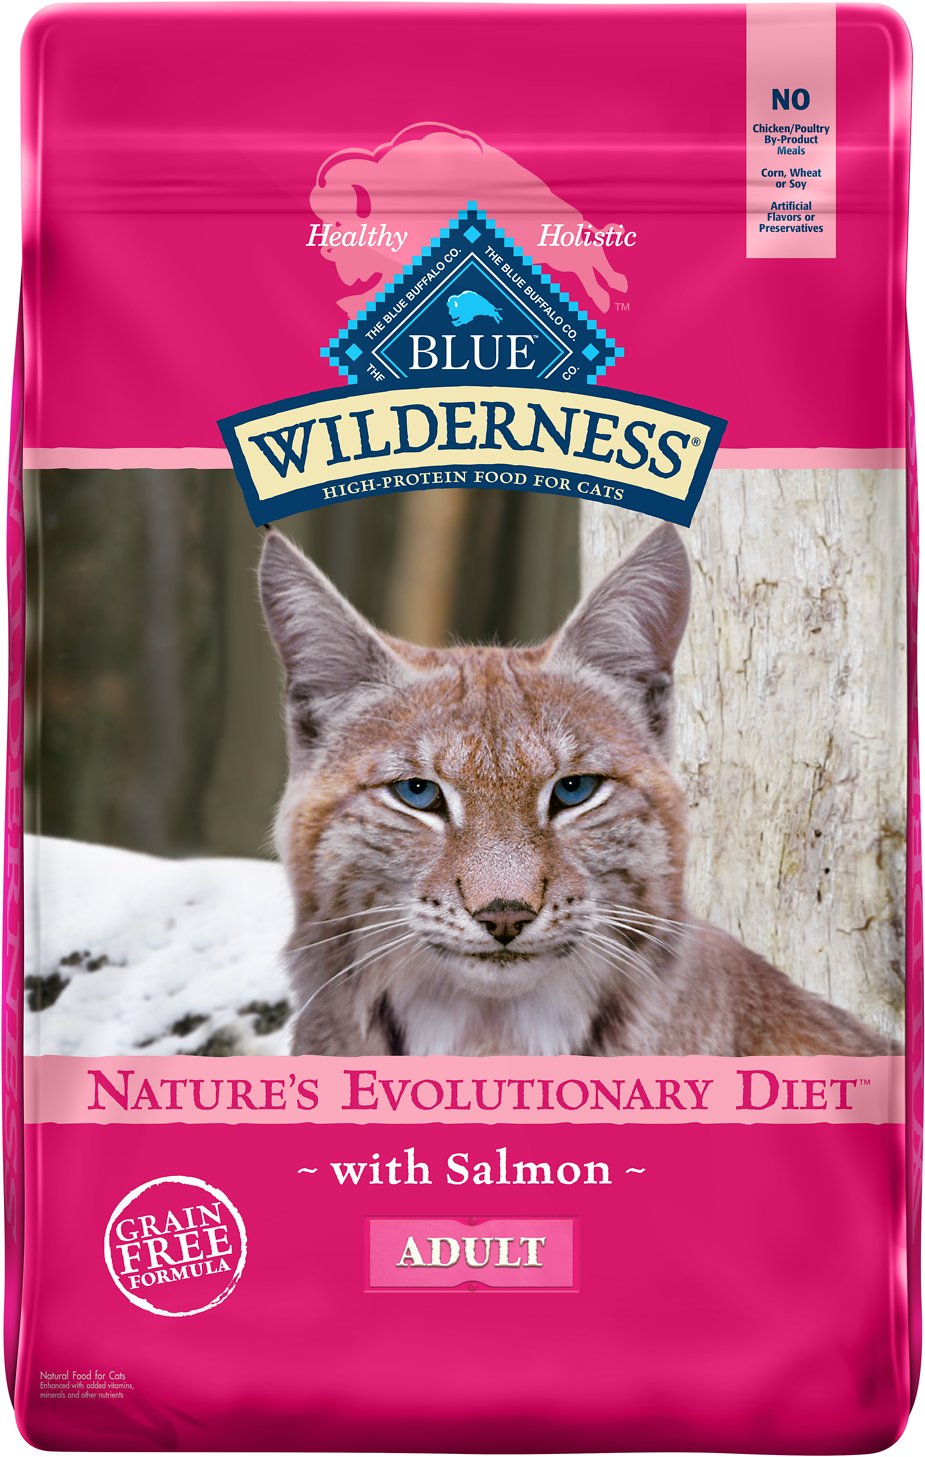 Blue Wilderness Duck Cat Food Reviews